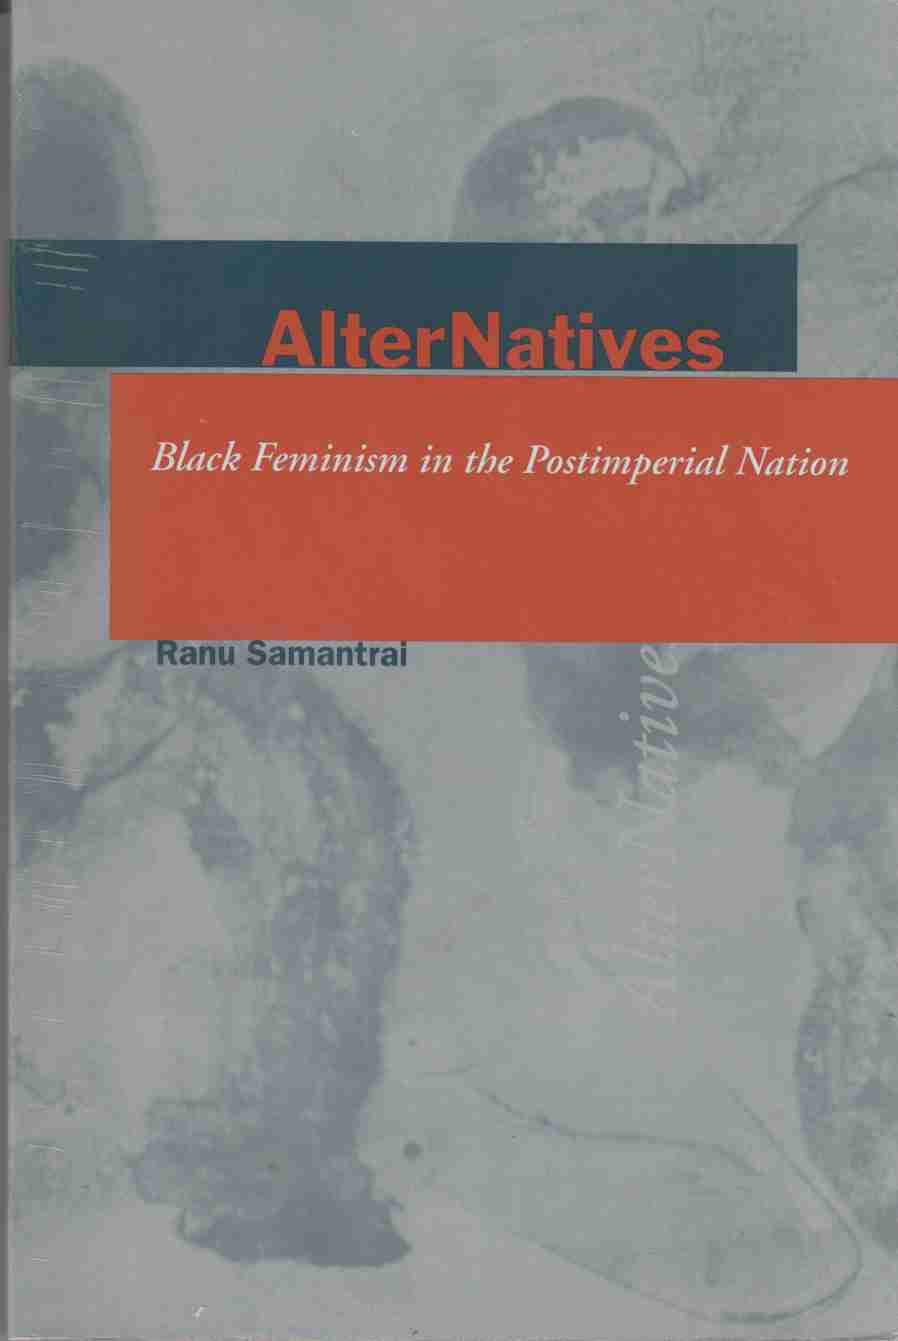 Image for AlterNatives Black Feminism in the Postimperial Nation